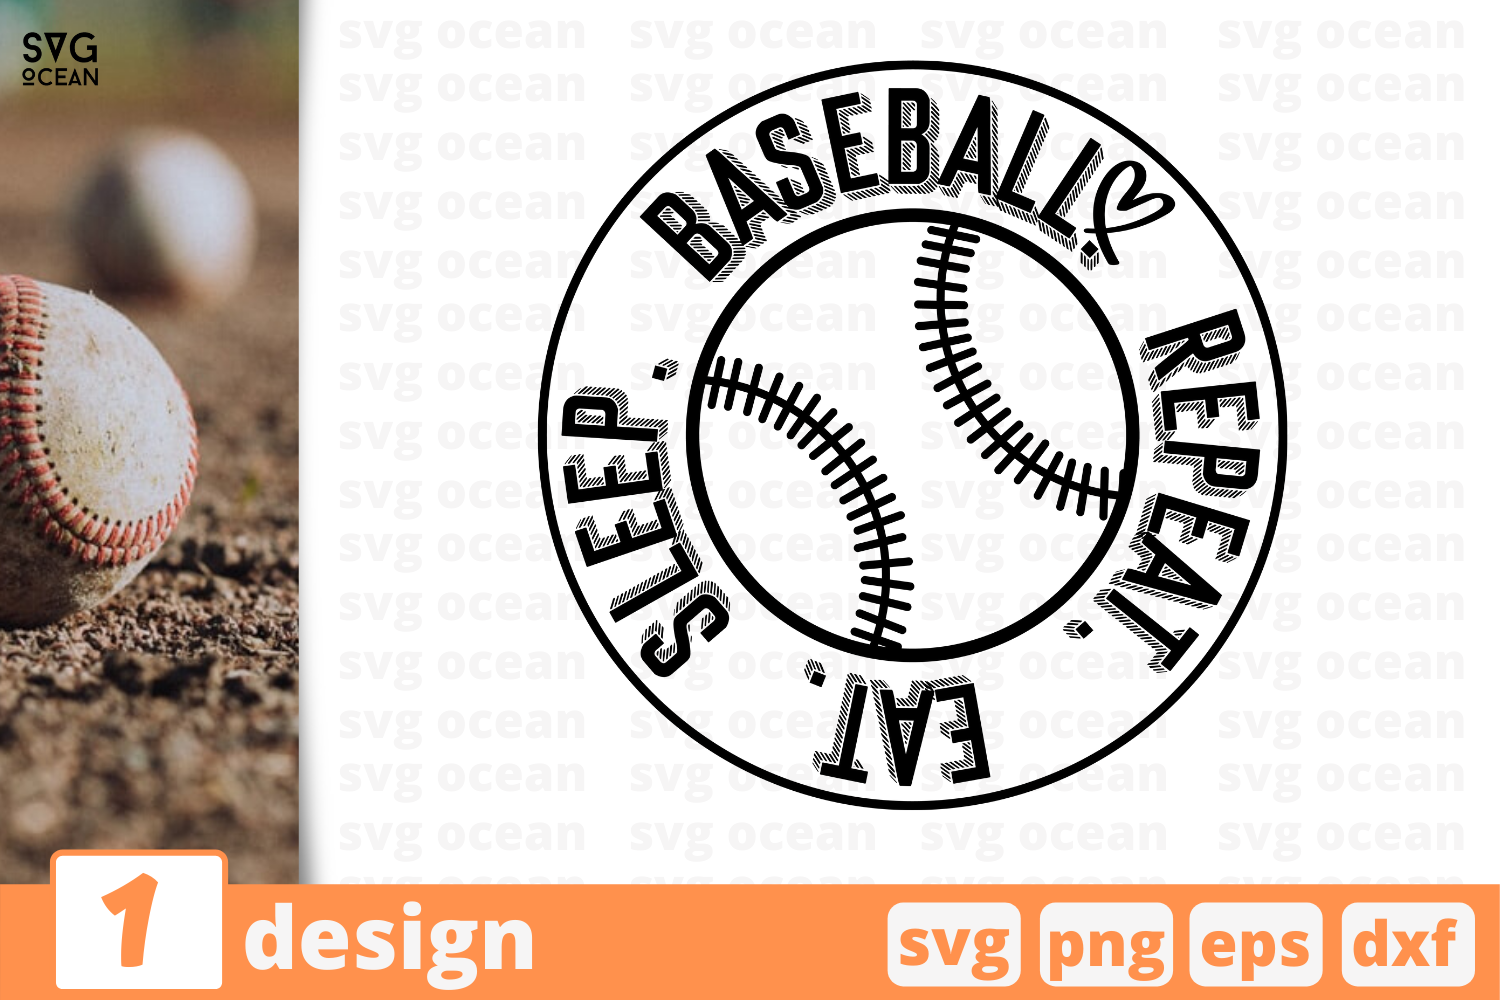 Download Free Baseball Sleep Eat Repeat Graphic By Svgocean Creative Fabrica for Cricut Explore, Silhouette and other cutting machines.